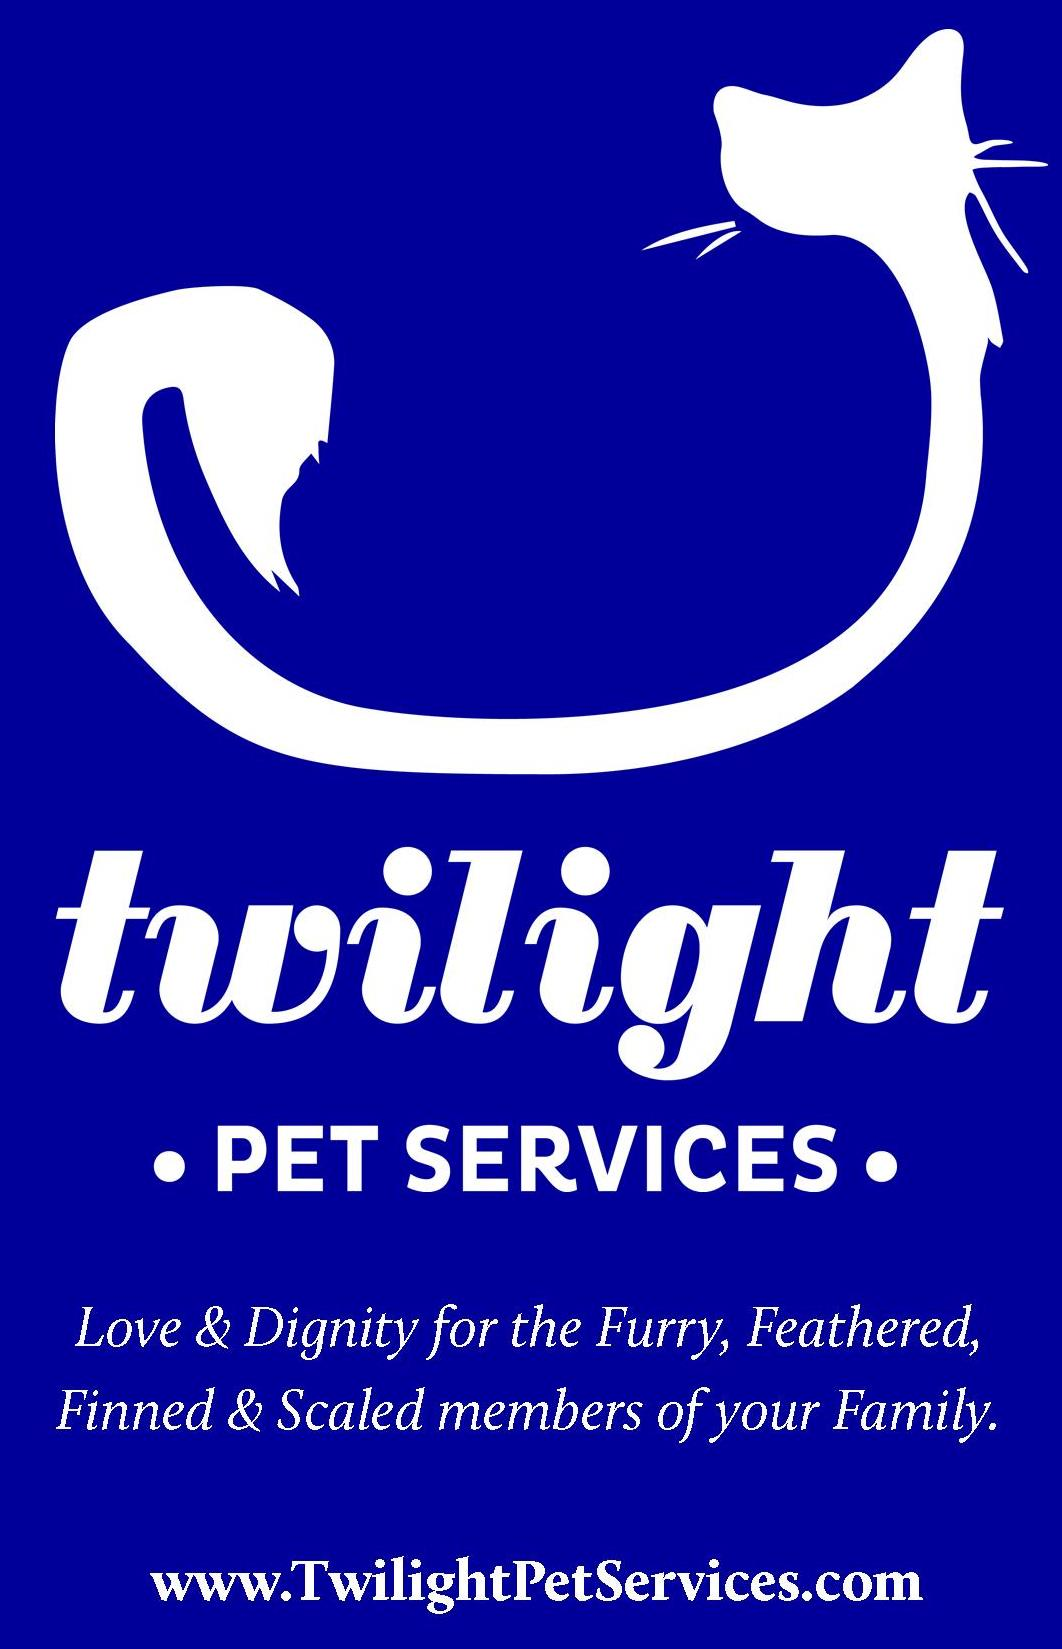 Twilight Pet Services.jpg